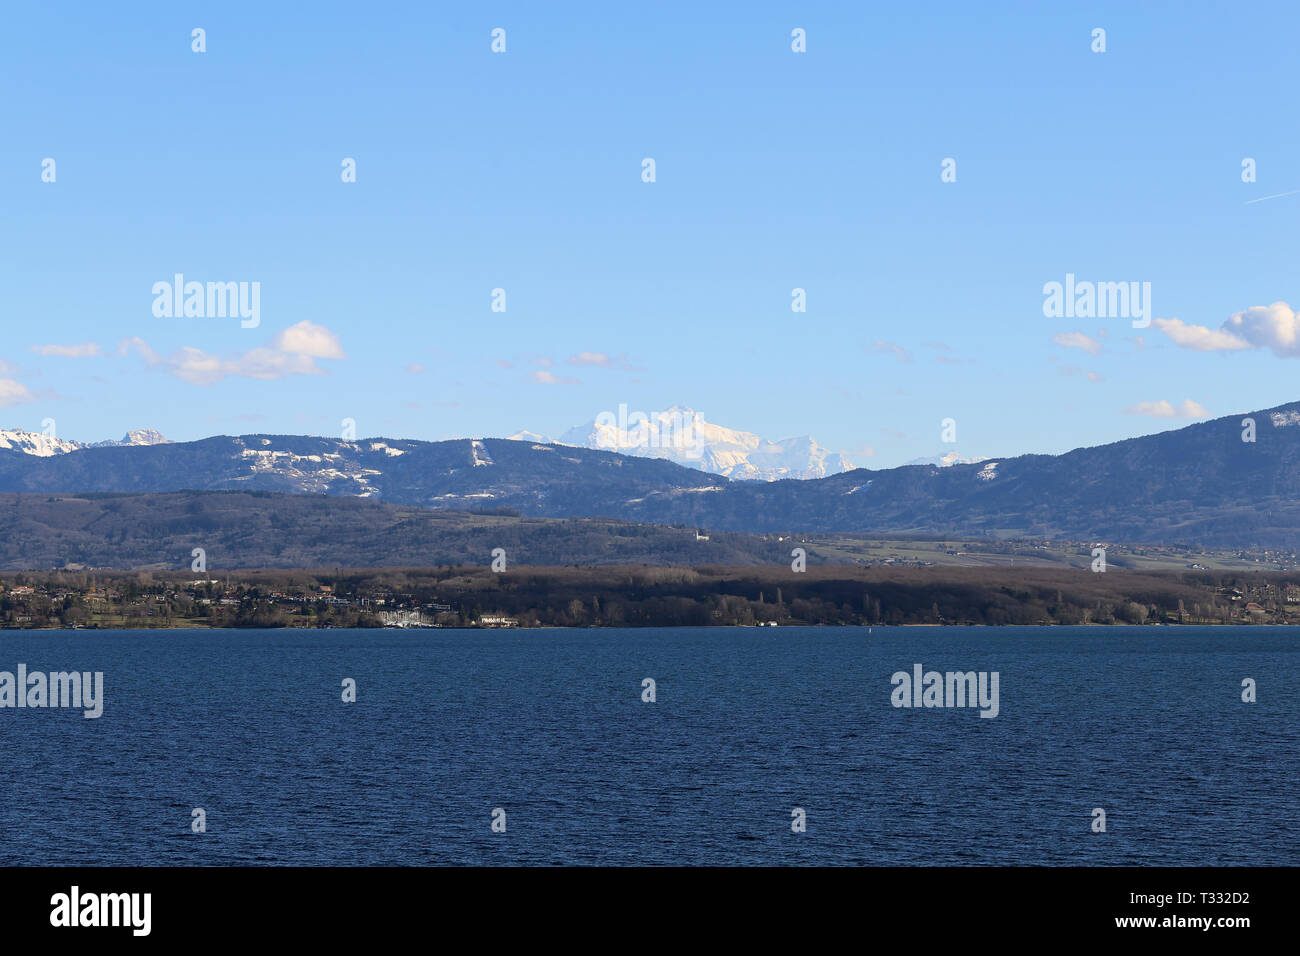 Amazing landscape from Nyon Switzerland. You can see the Alps and some clouds above those mountains. The sky is bright blue and there is clouds. - Stock Image